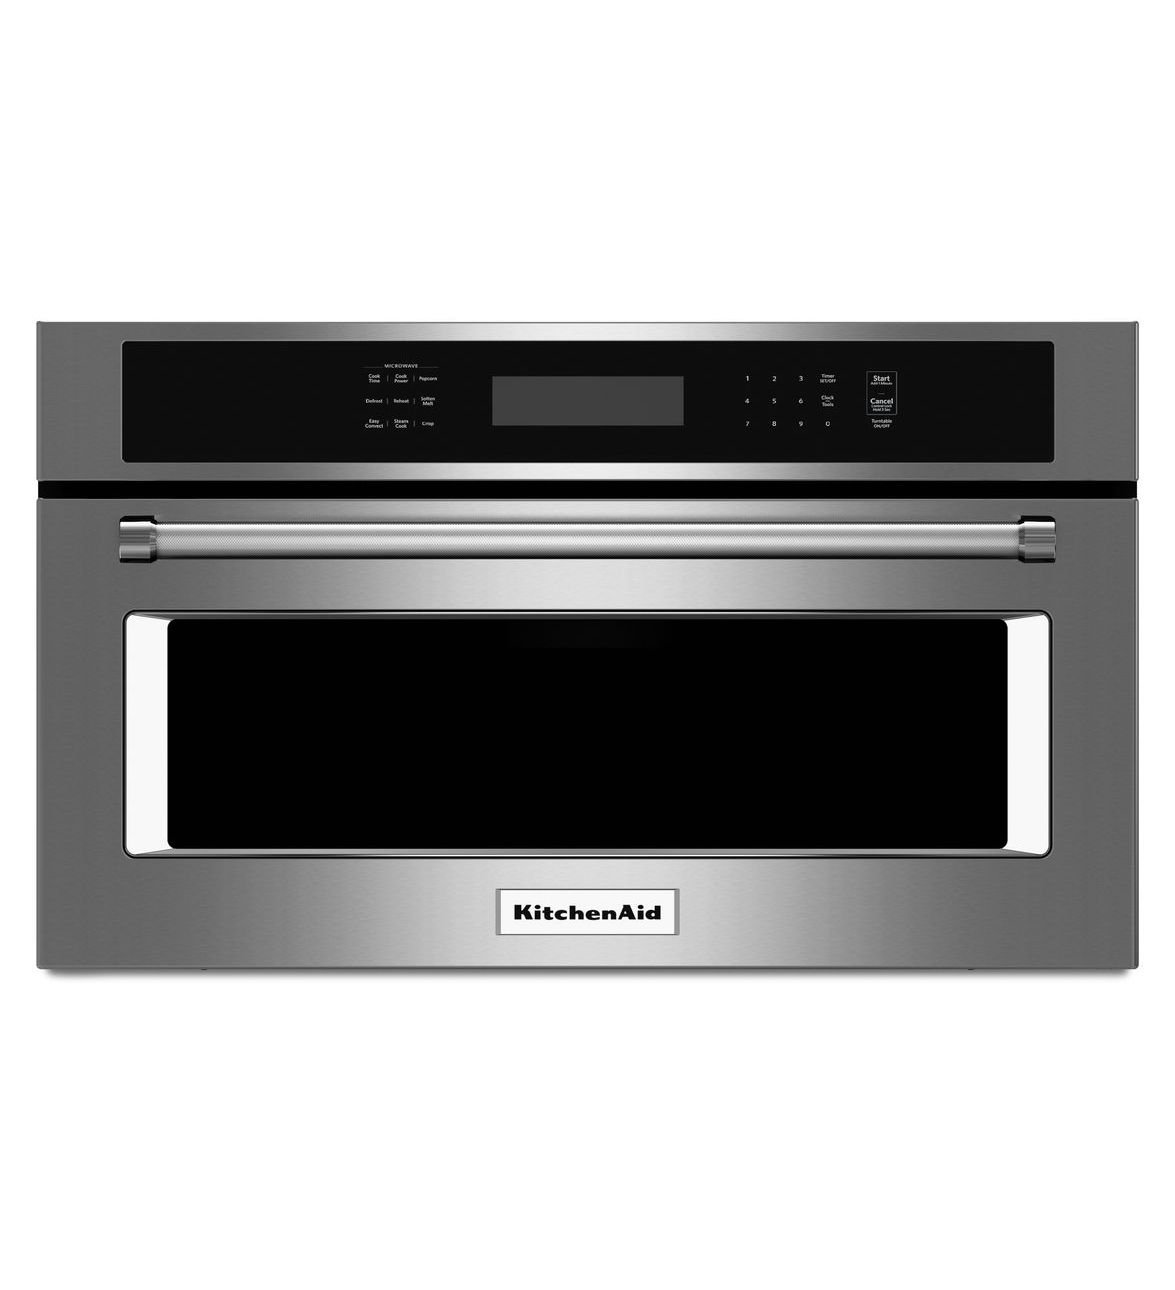 """KITCHENAID KMBP100ESS 30"""" Built-in Microwave Oven with 900 Watts, 1.4 cu. ft. Capacity, Convection Cooking, Crispwave Technology and Sensor Steam Cycle"""